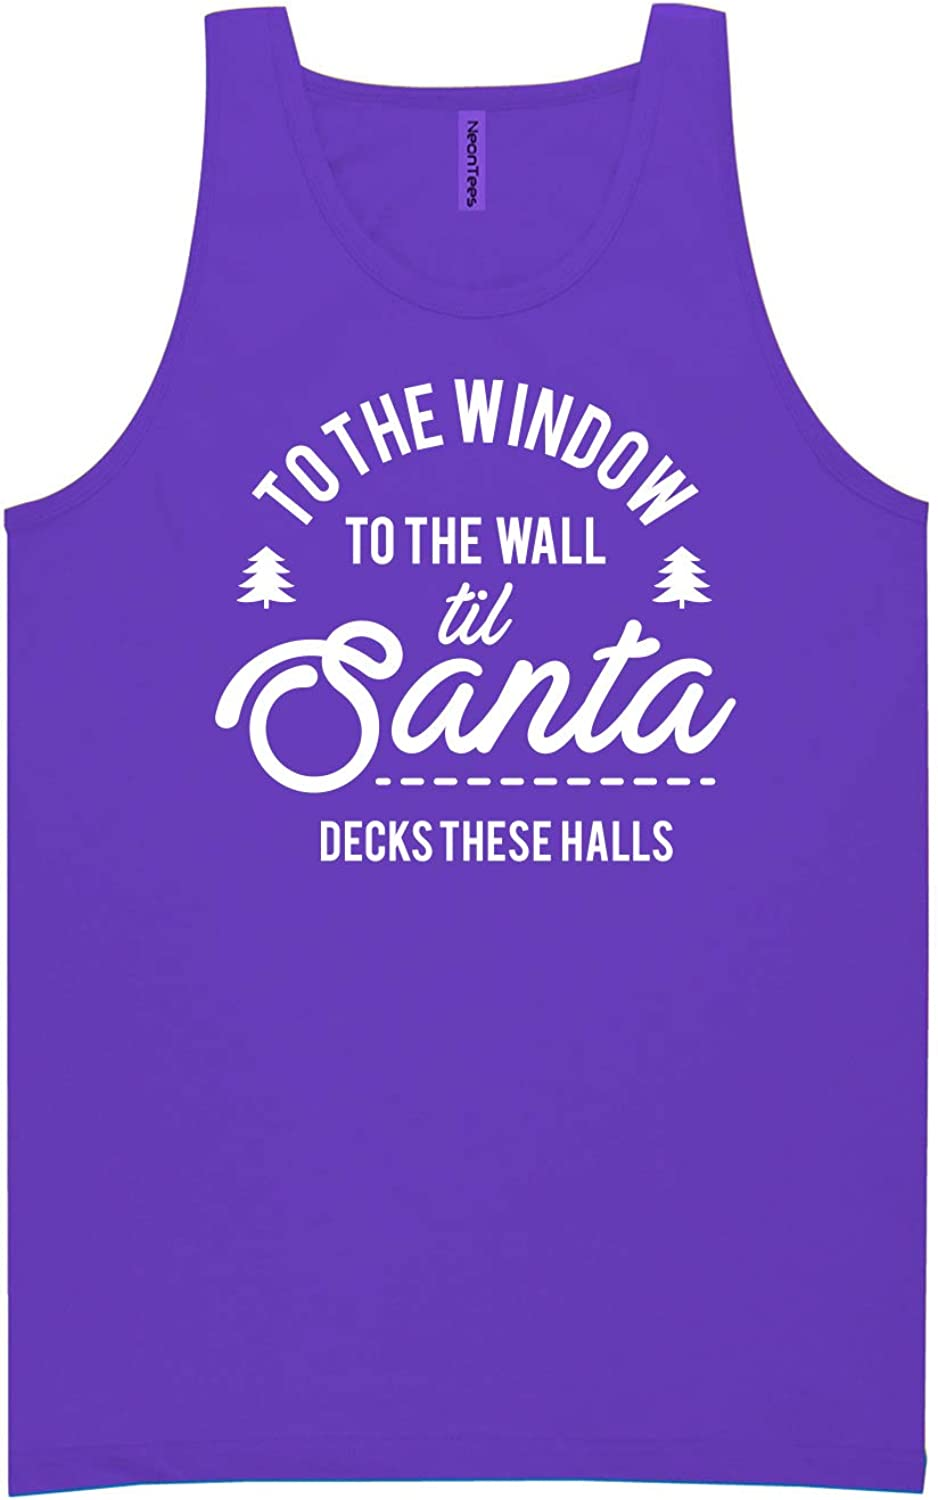 to The Window to The Wall Neon Purple Tank Top - XX-Large